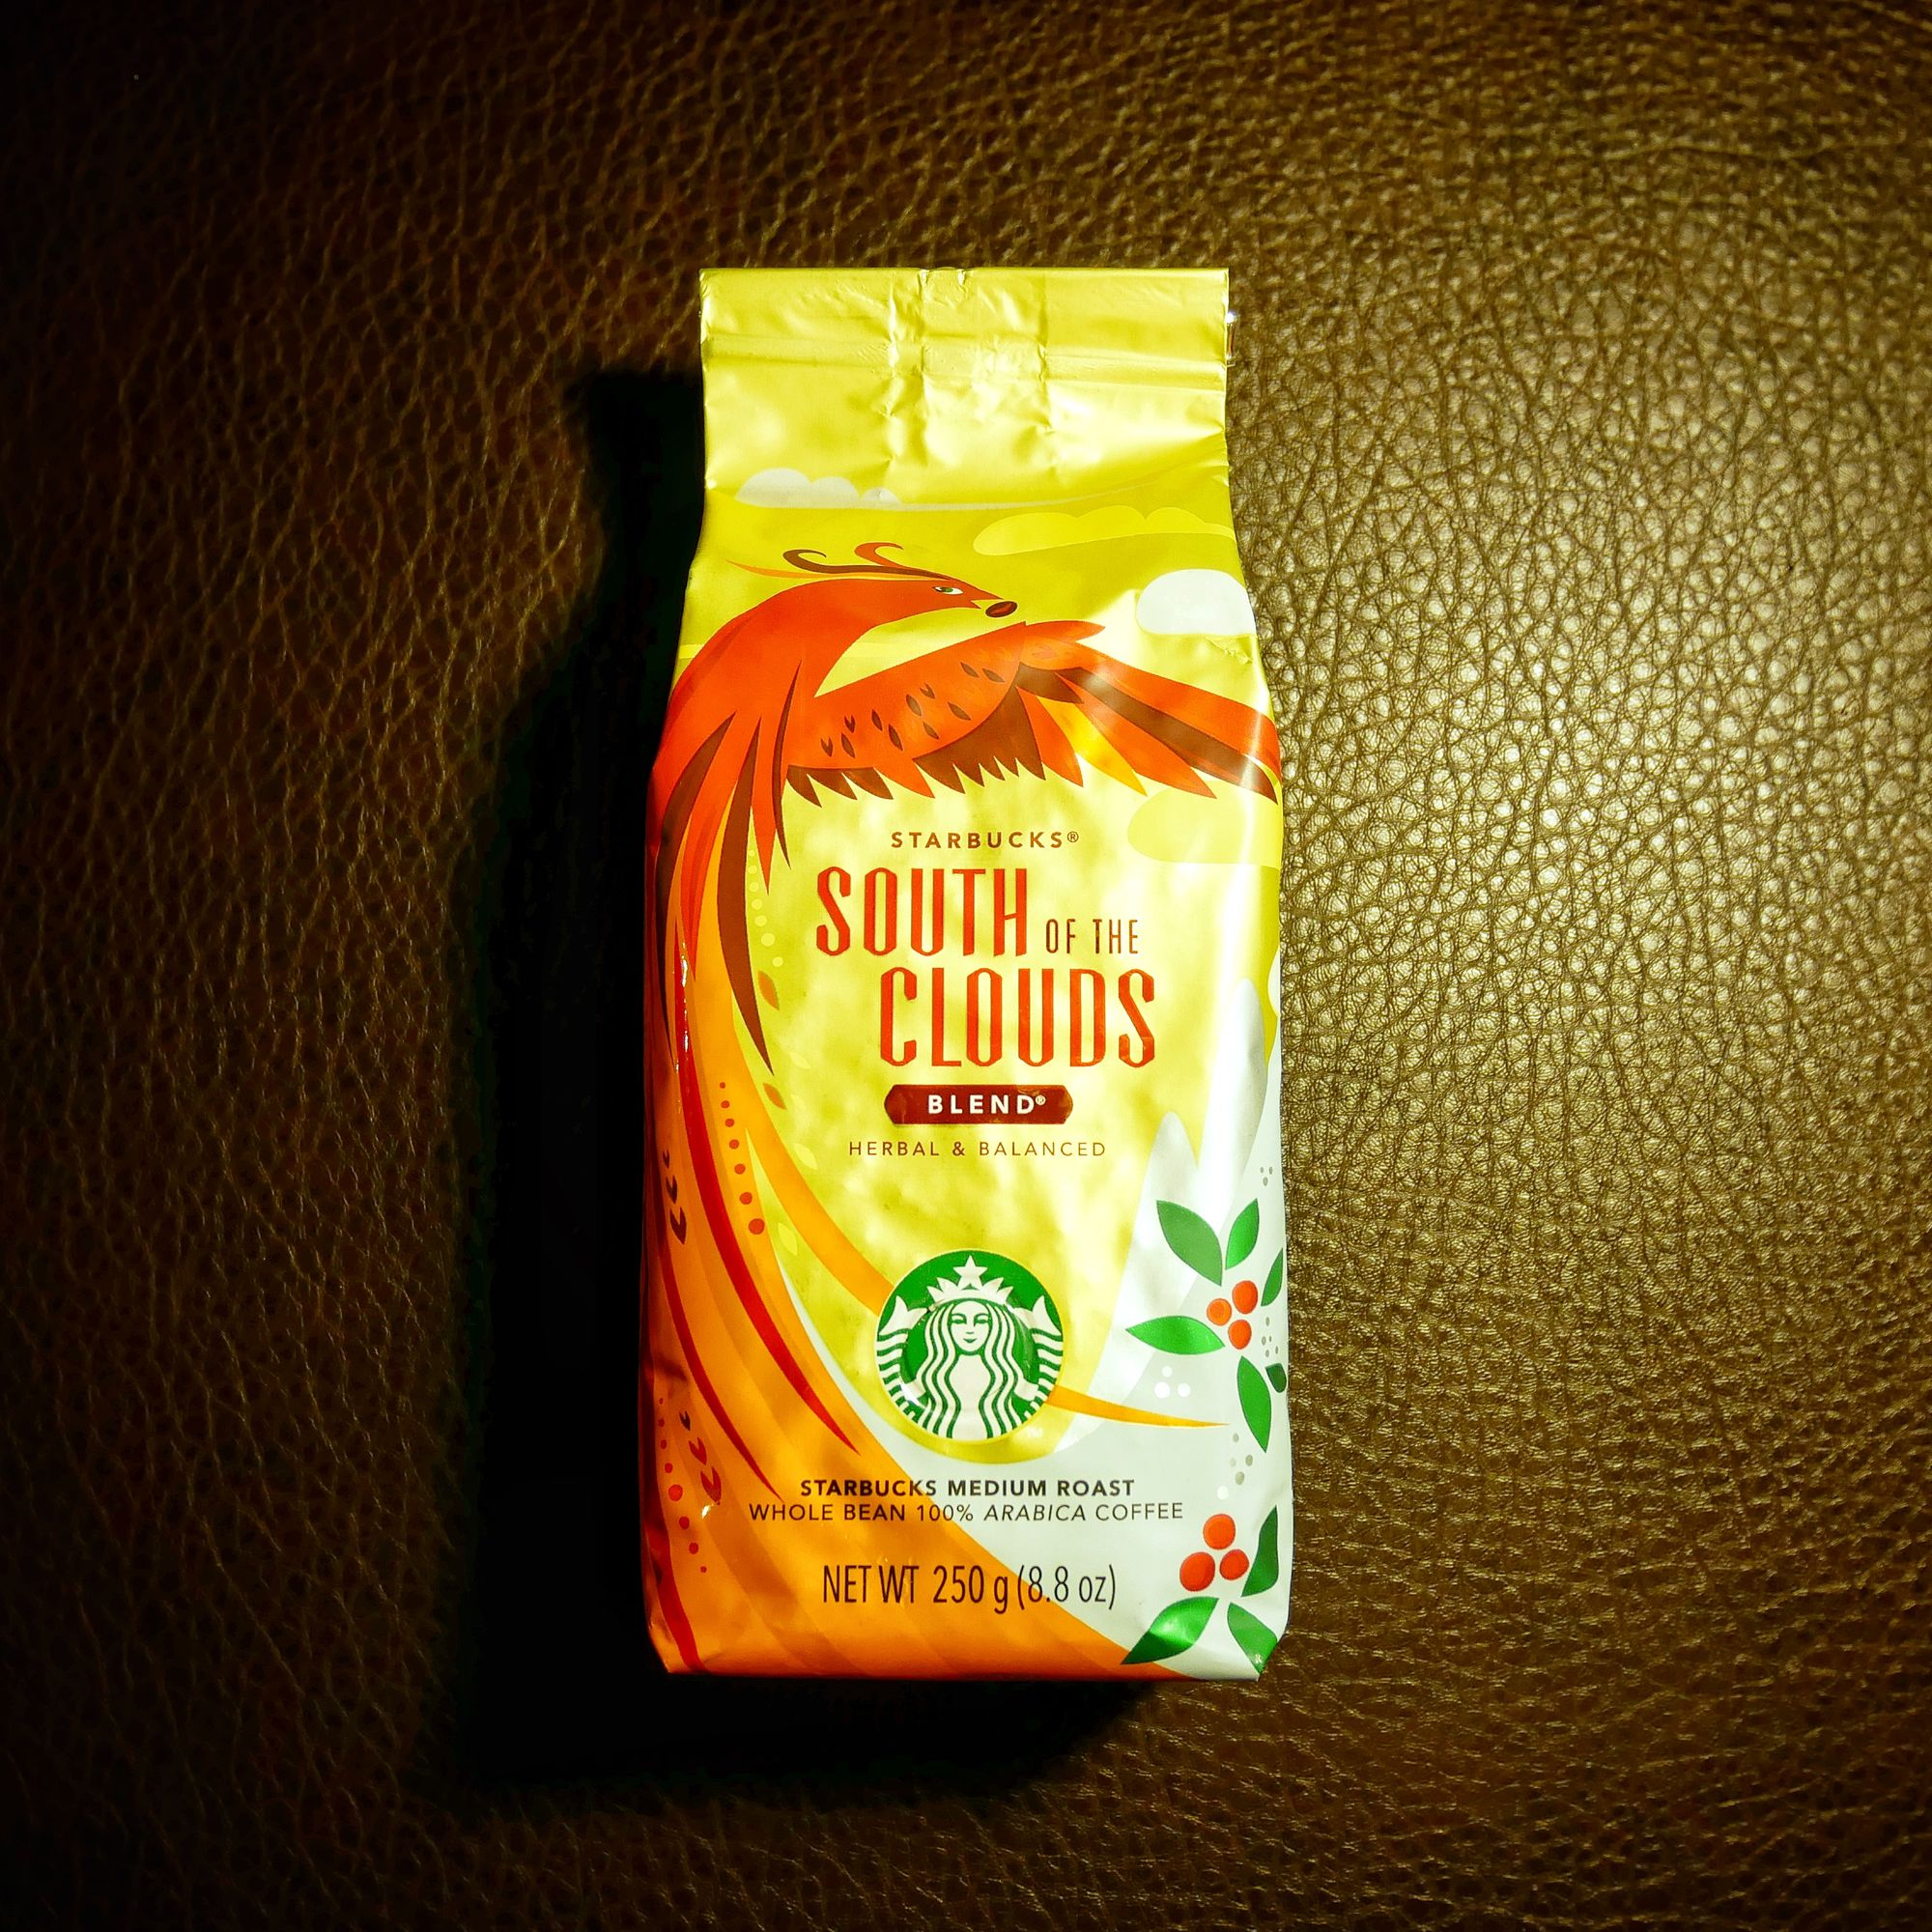 South of the Clouds Blend : Starbucks